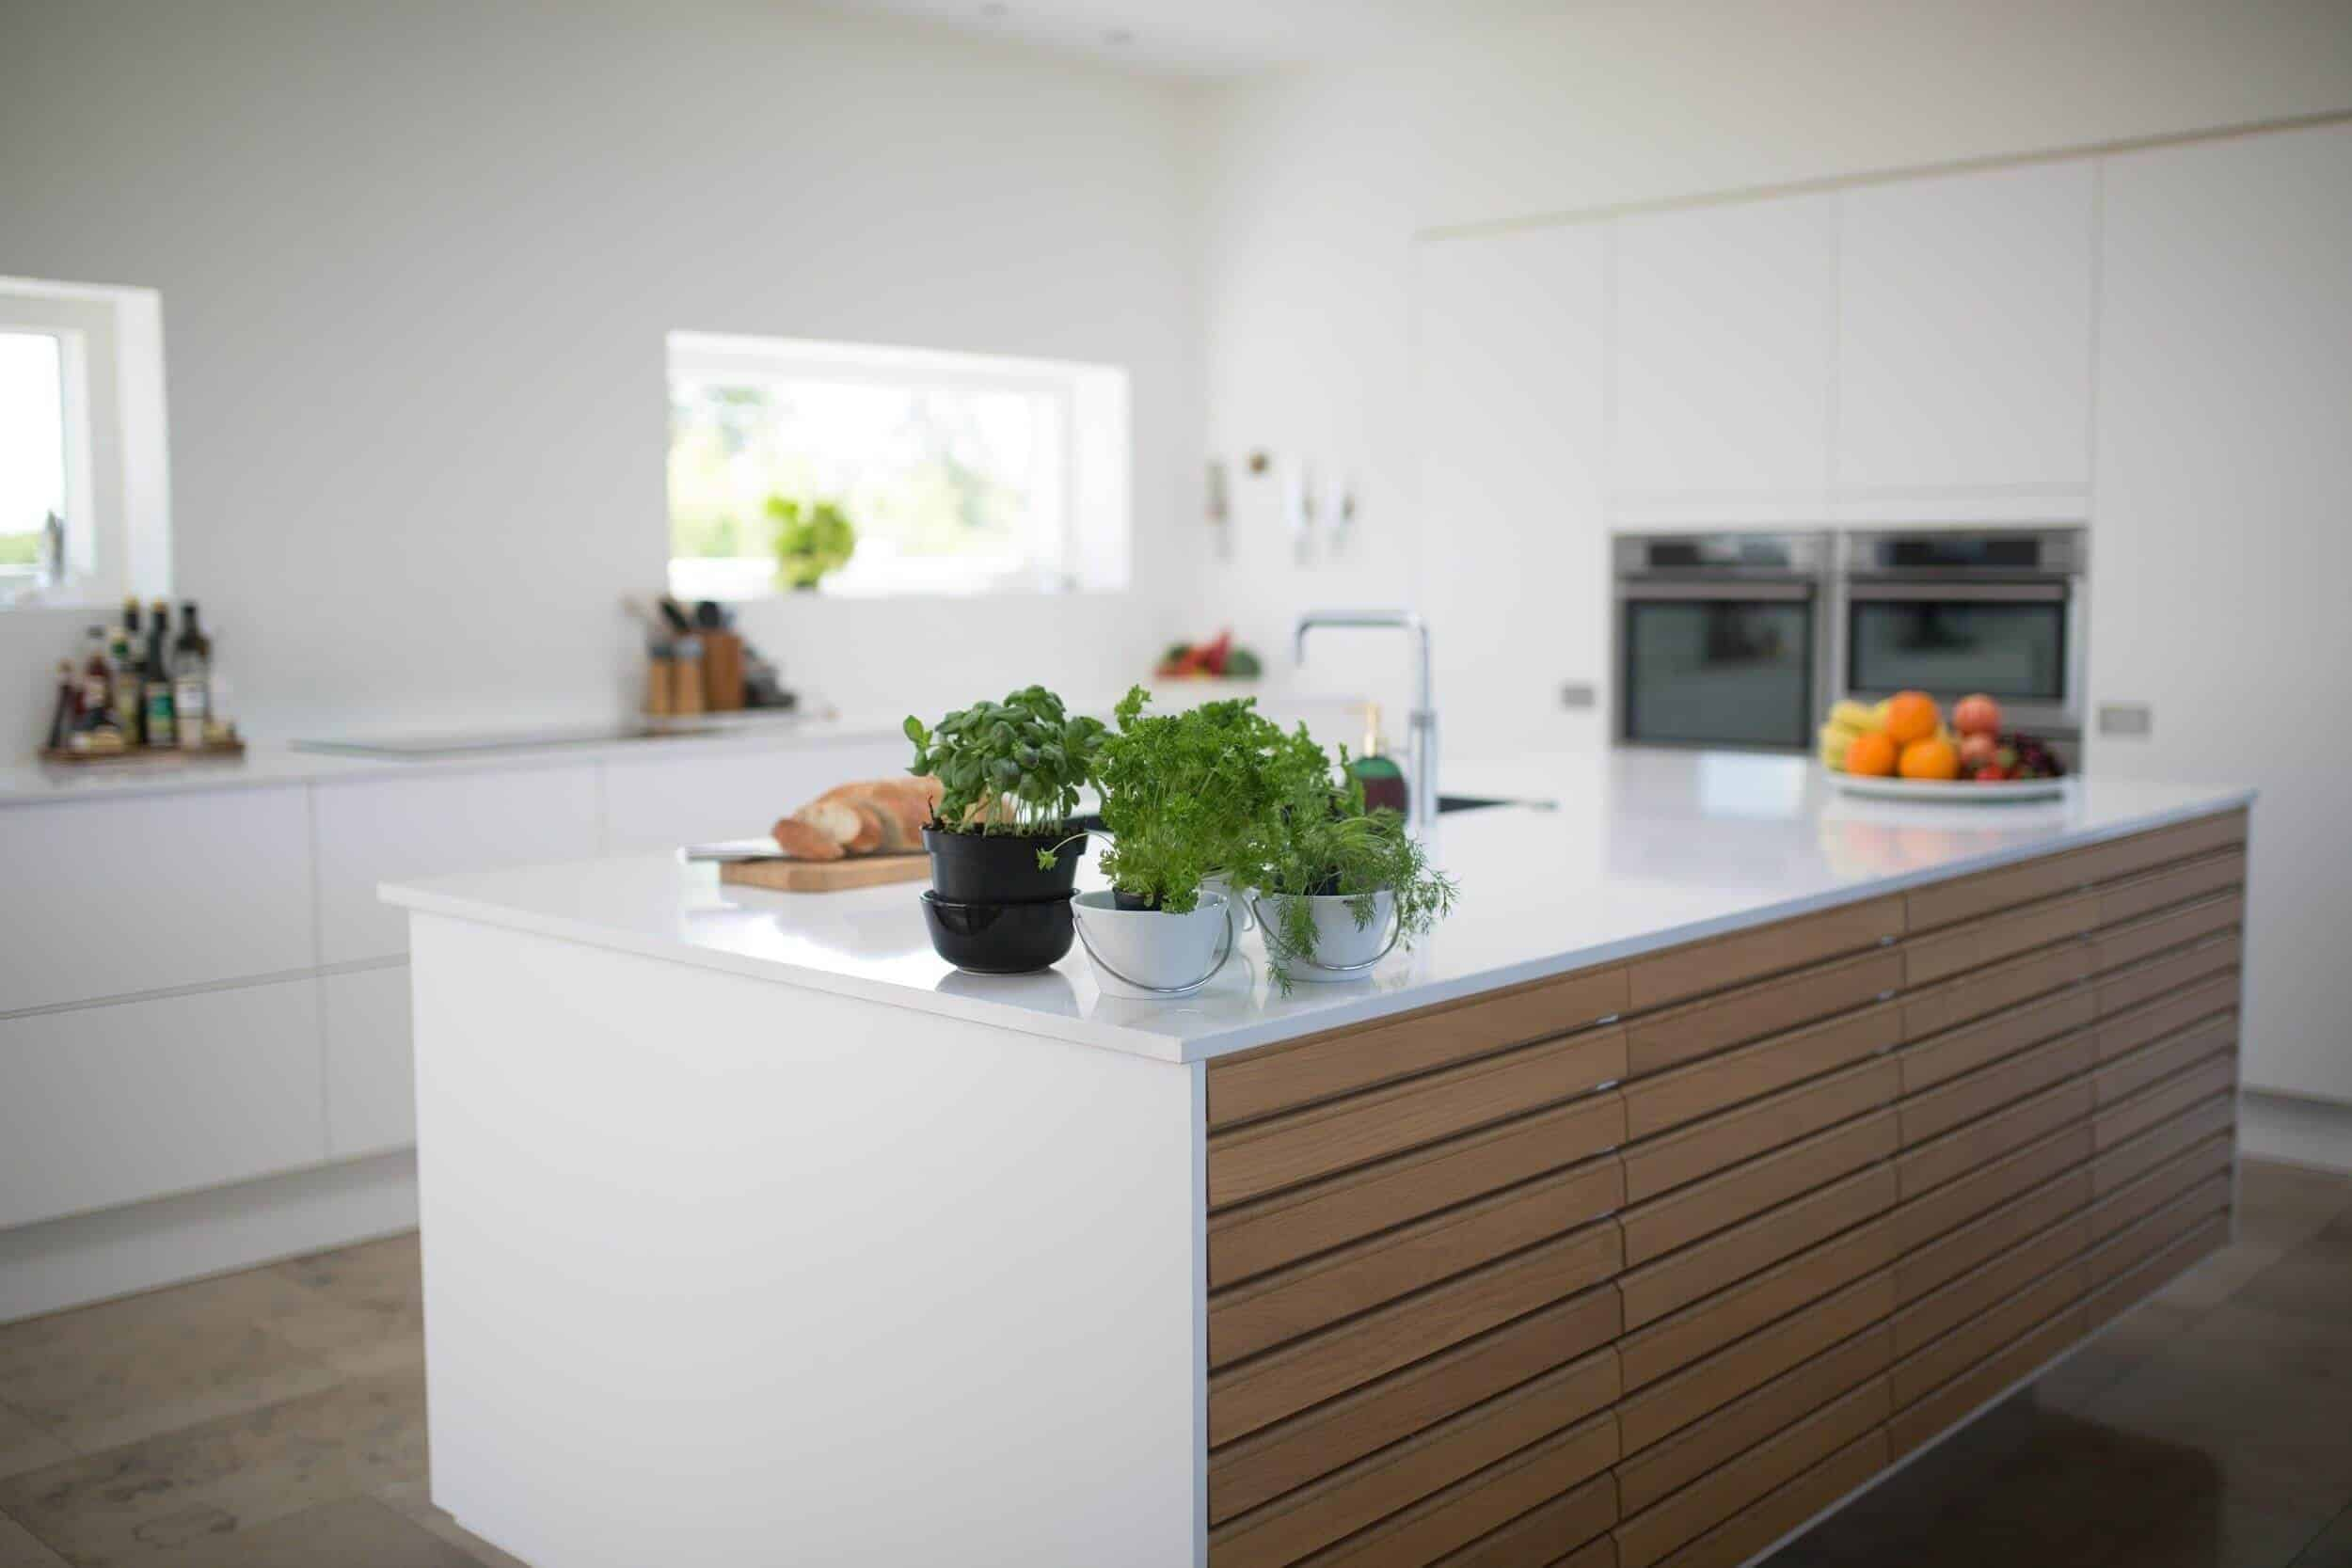 Top 4 Design Ideas to Jump Start Your 2019 Home Improvement Project 2